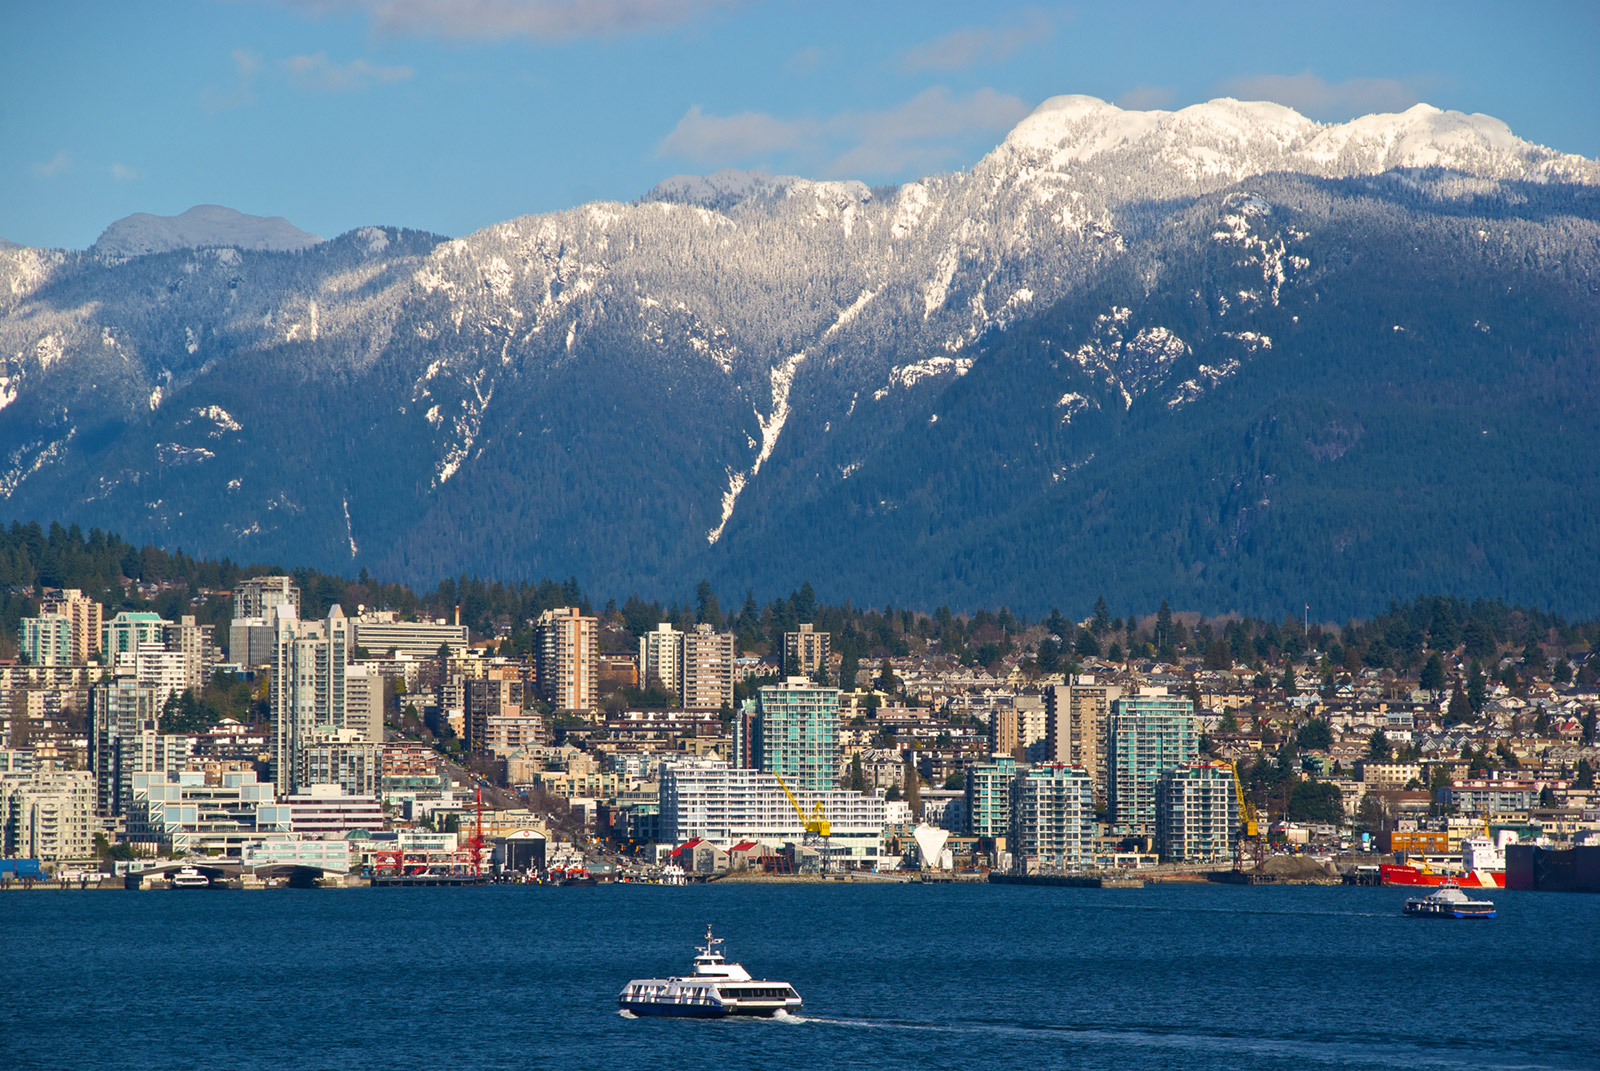 Vancouver is a modern city that provides a diverse range of scenery.